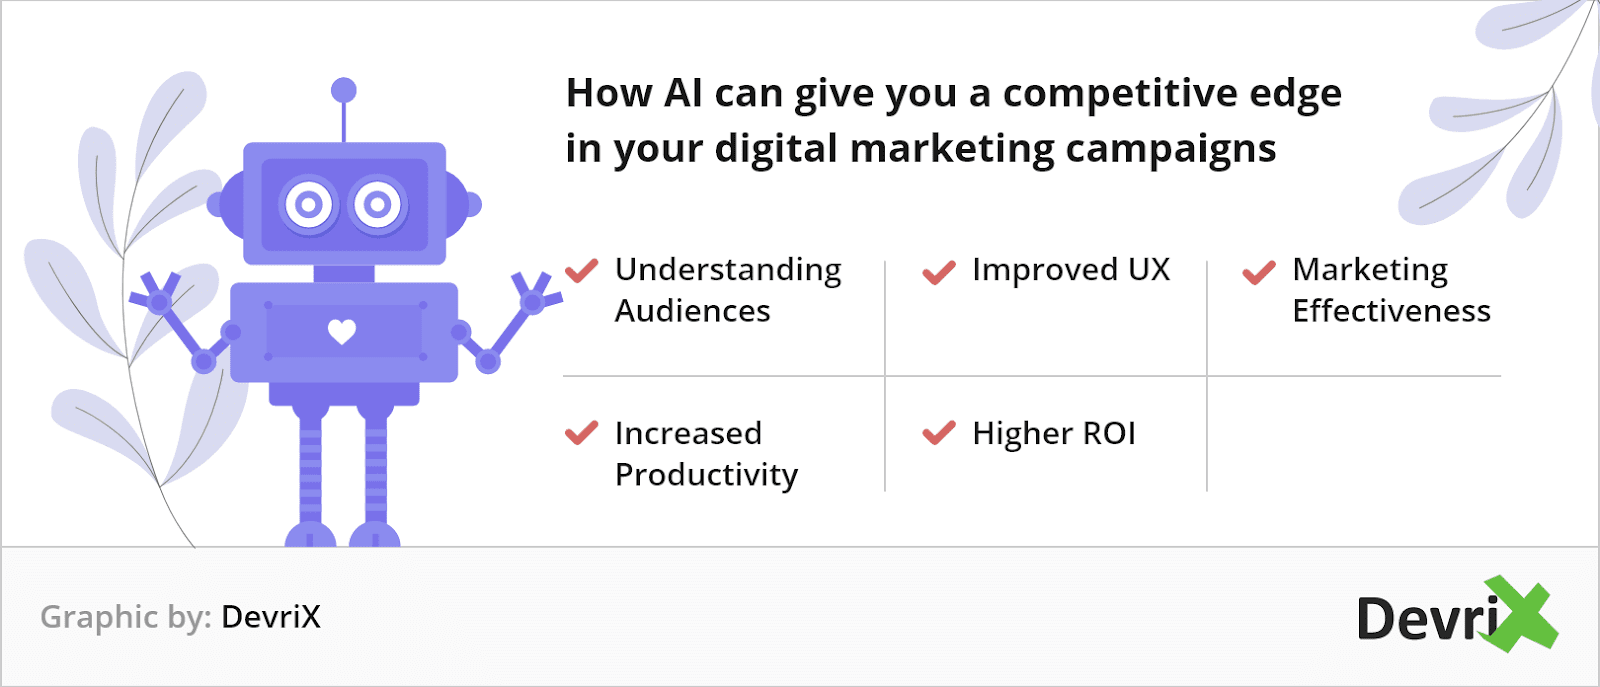 How AI Can Give You a Competitive Edge@2x